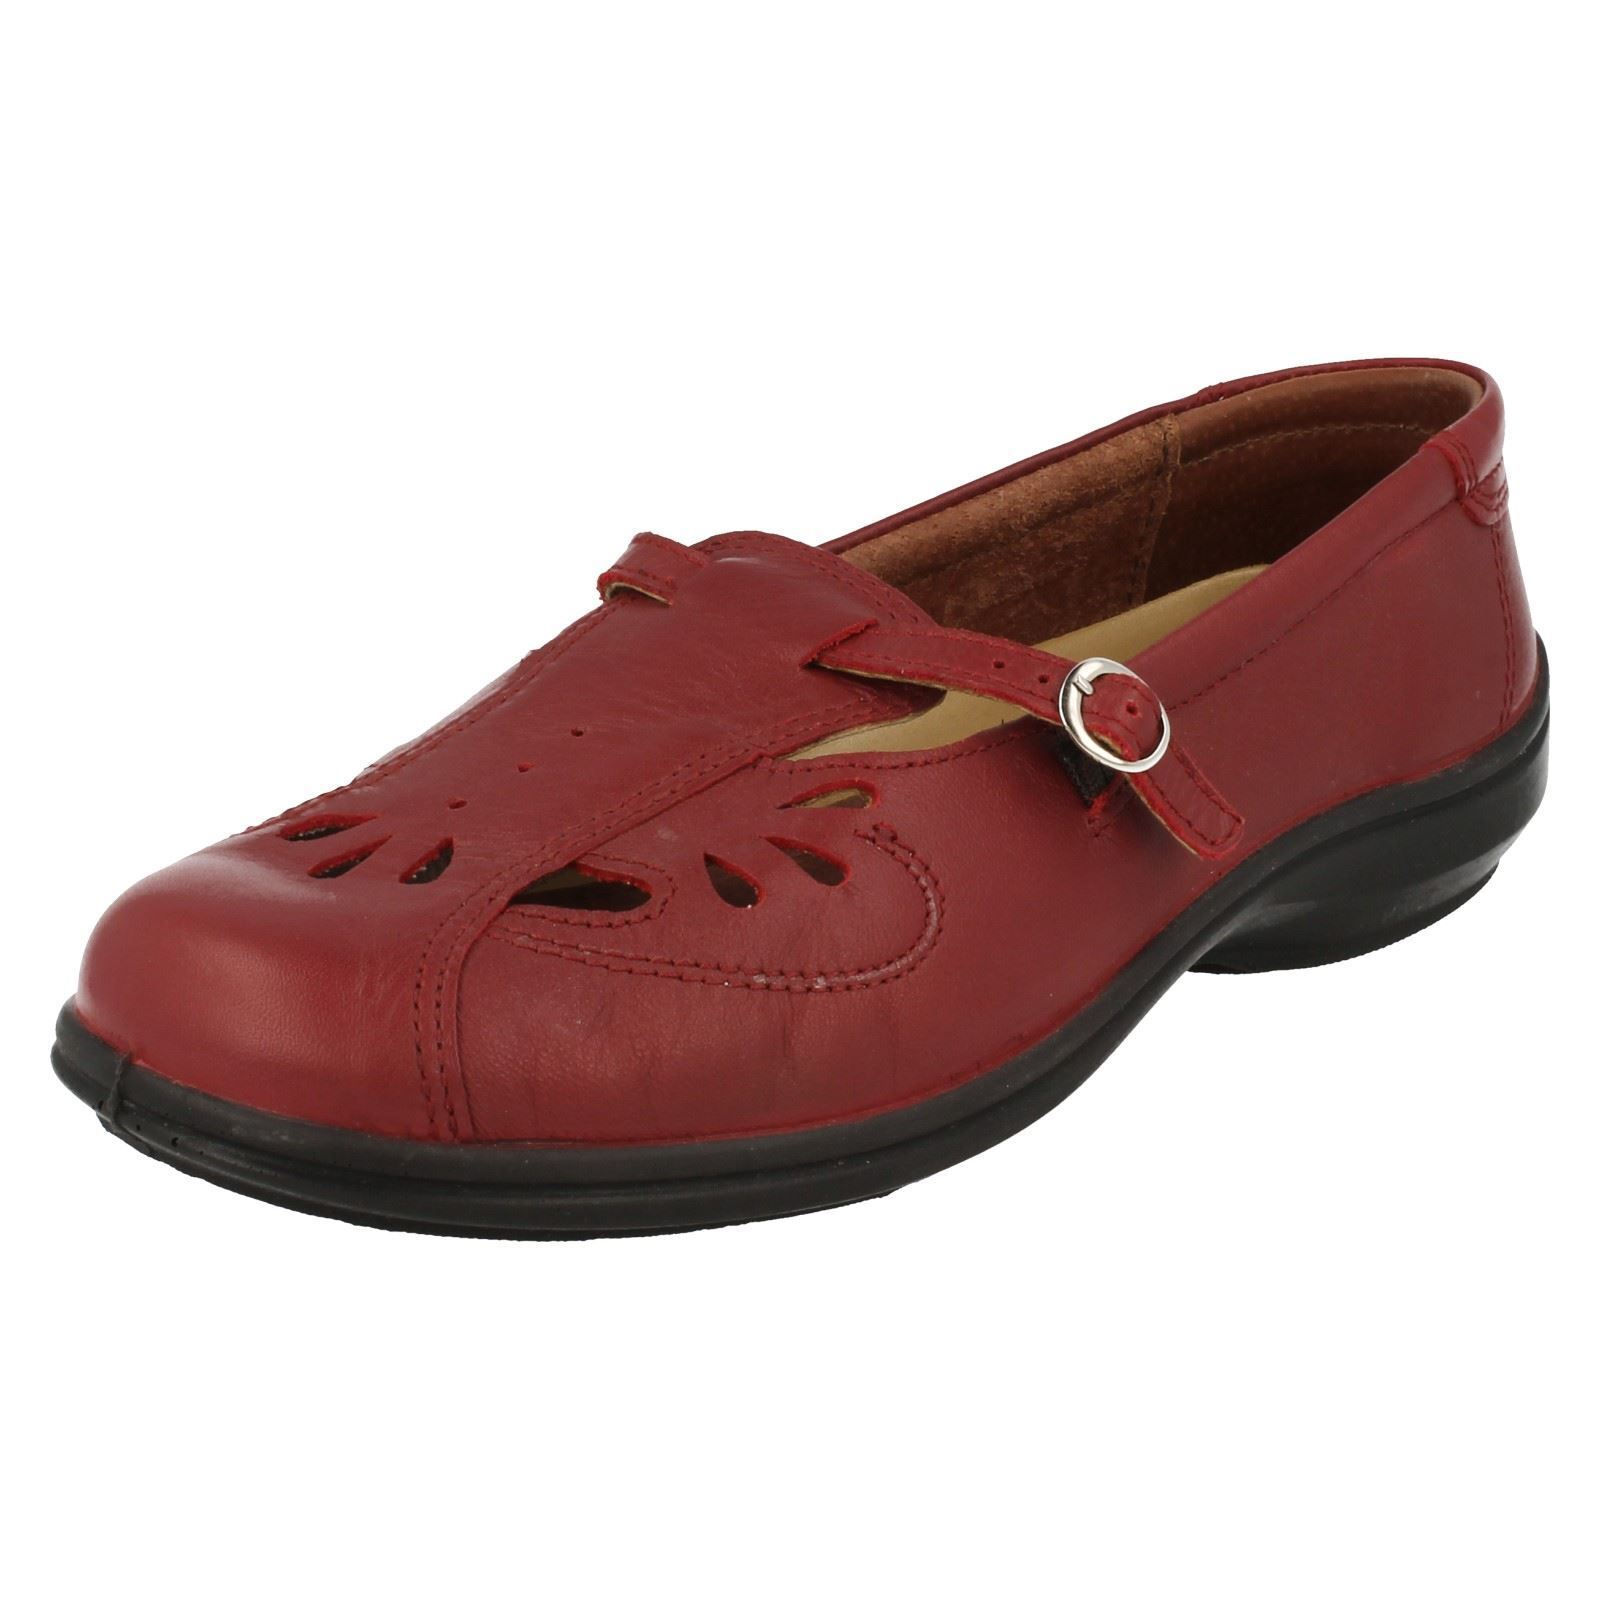 Ladies Easy B Flat shoes 'Winchcombe'